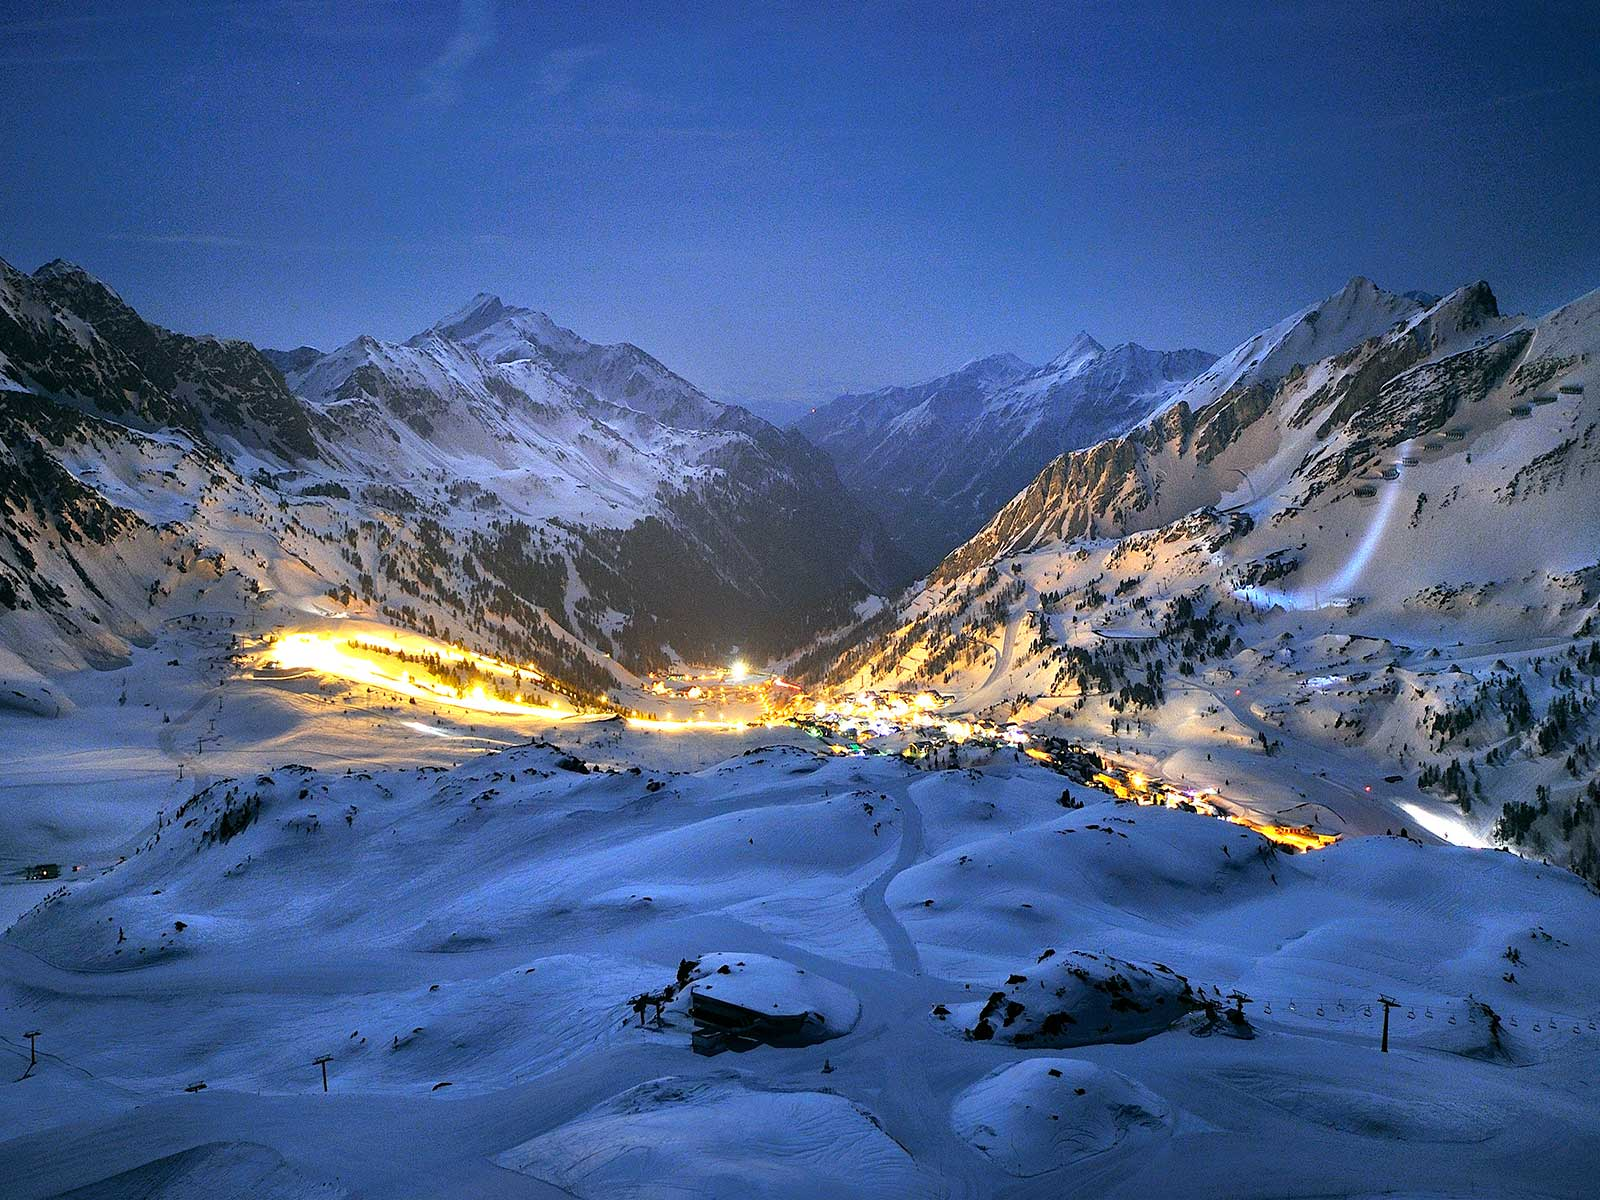 A family holiday in a relaxed atmosphere: Hotel Montana Obertauern